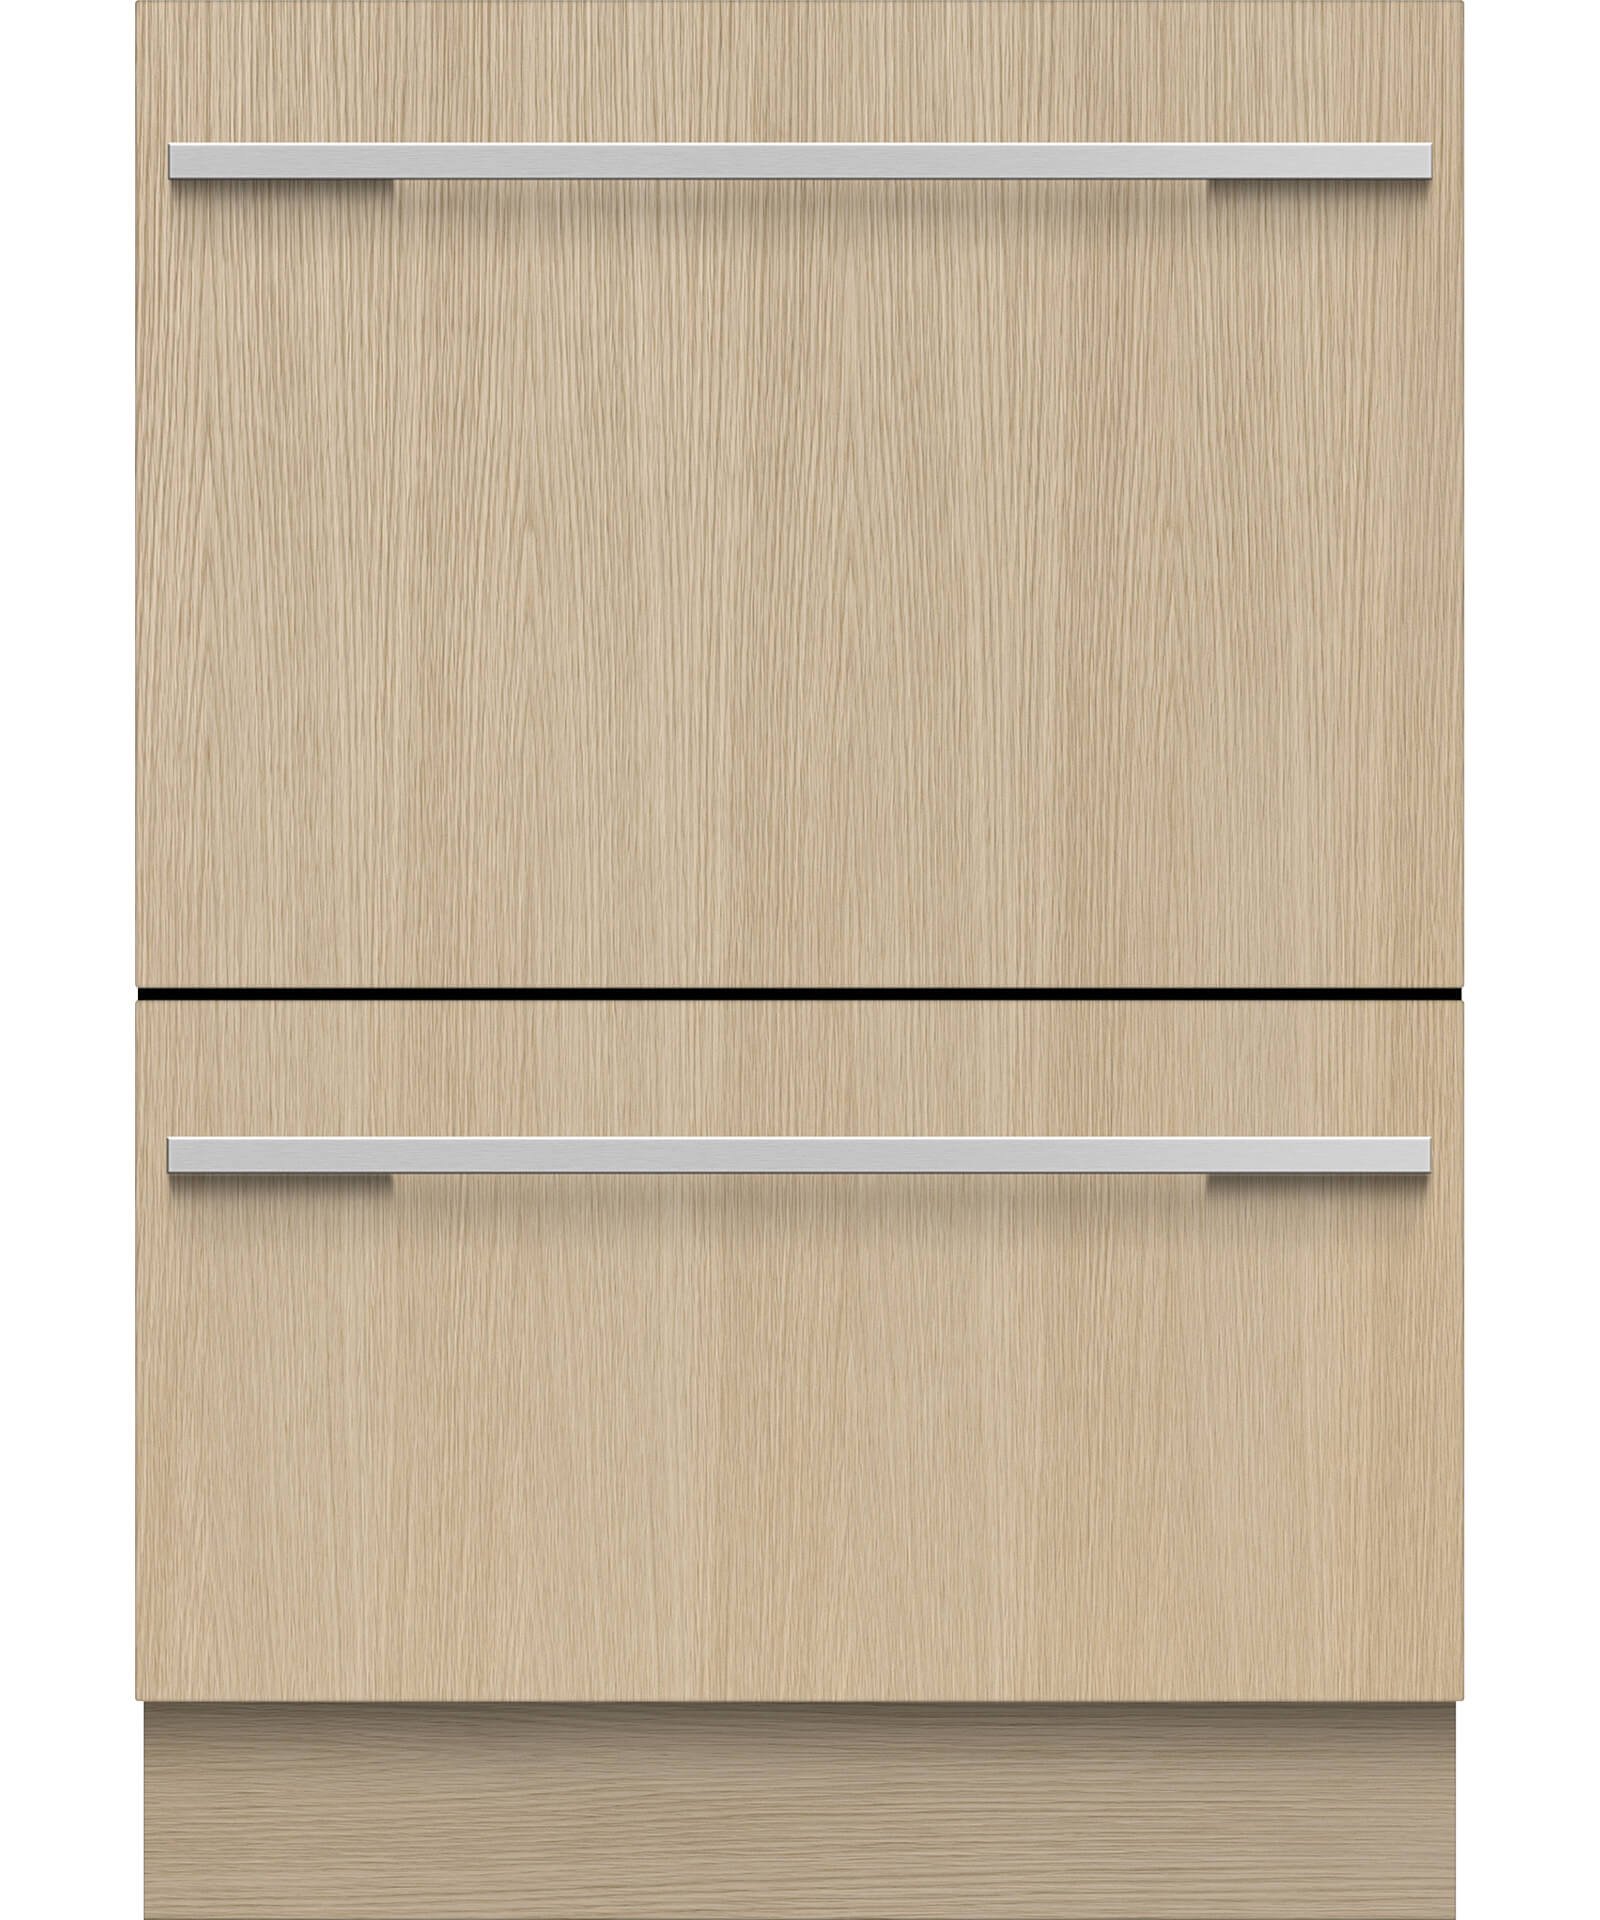 Double DishDrawer™, 14 Place Settings, Panel Ready (Tall)